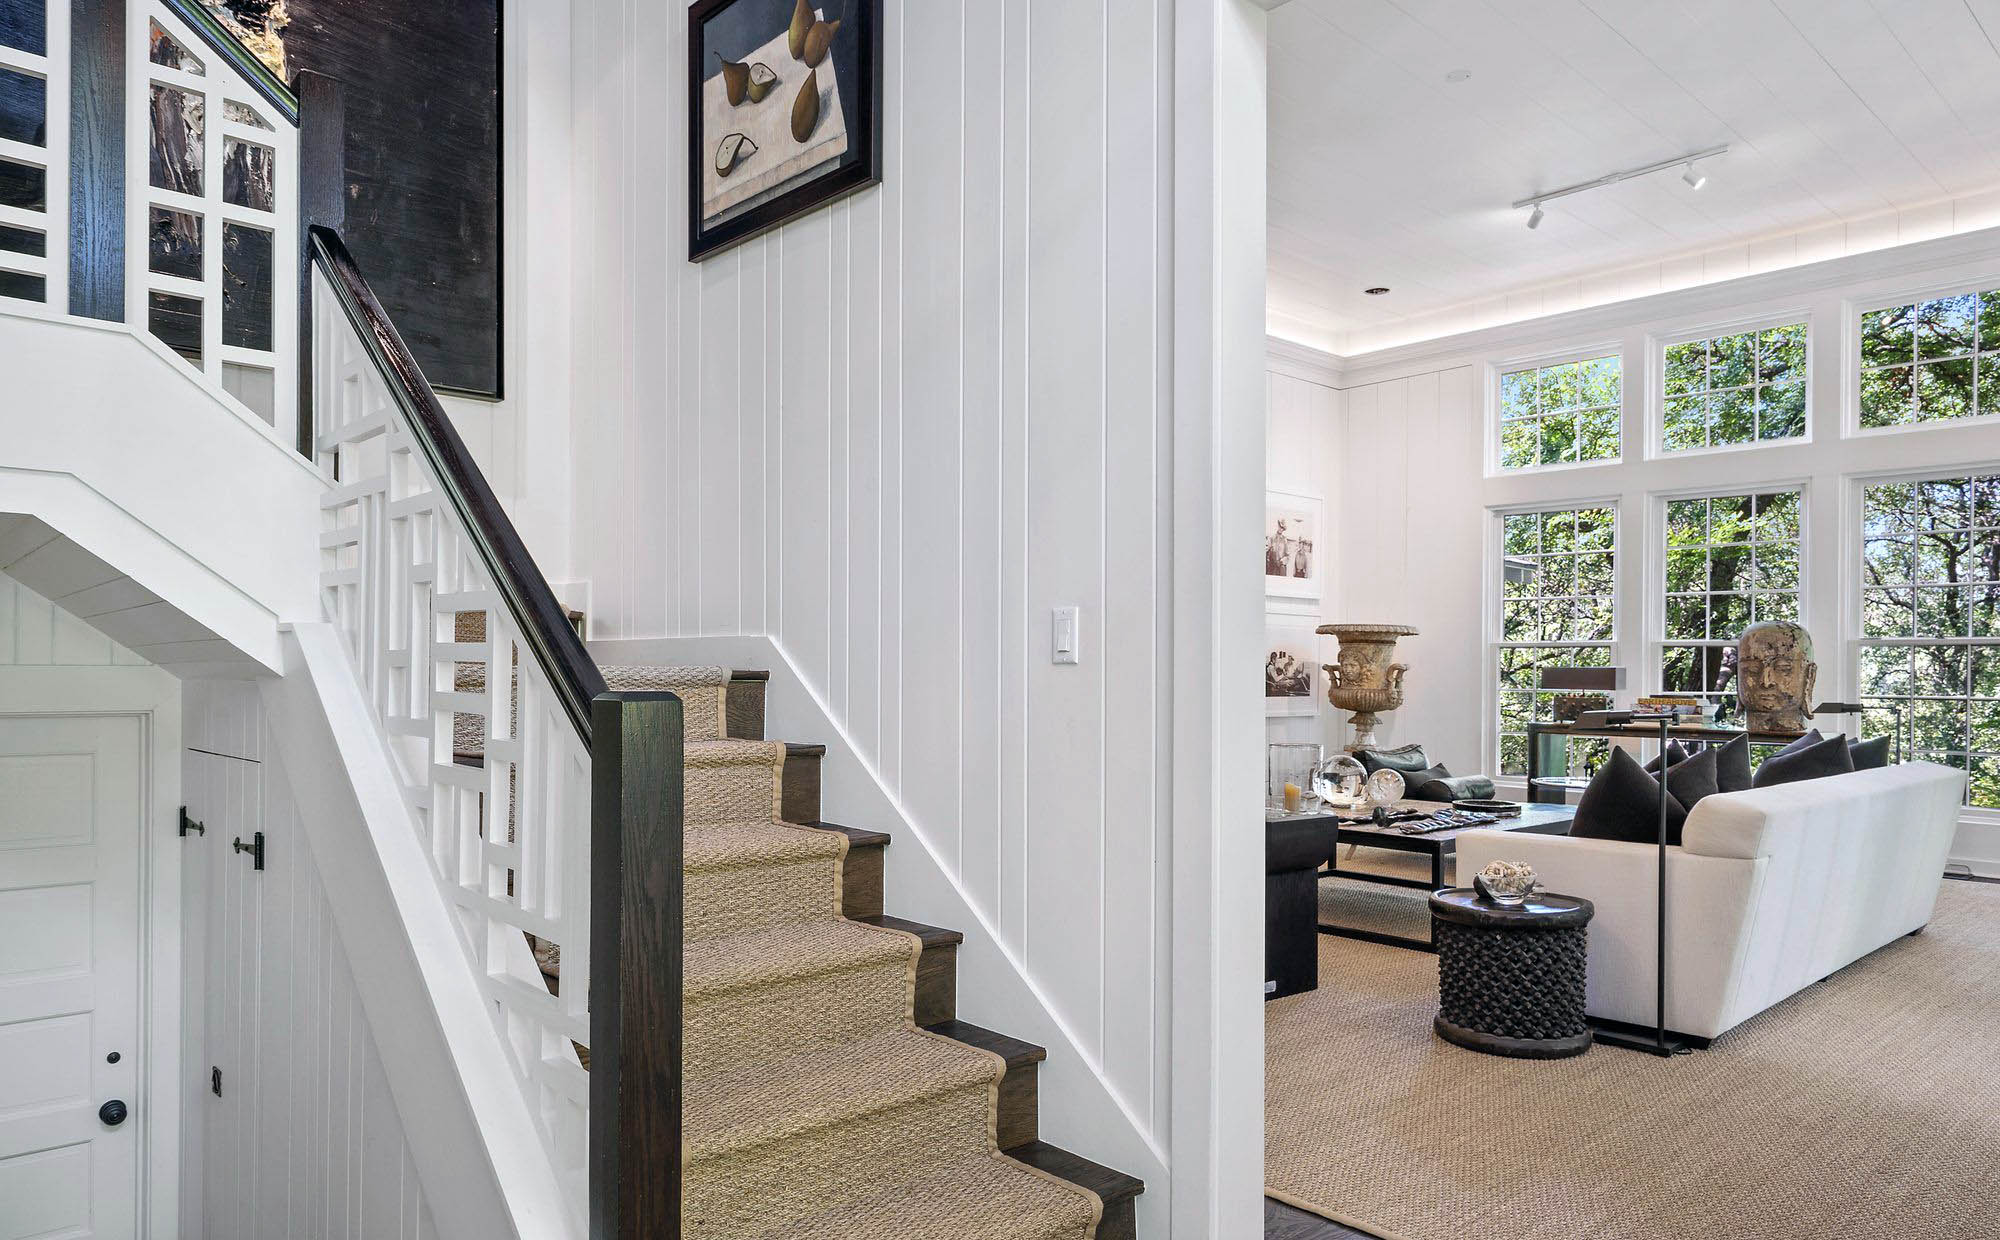 sisal grass area rug in a living room and stair runner